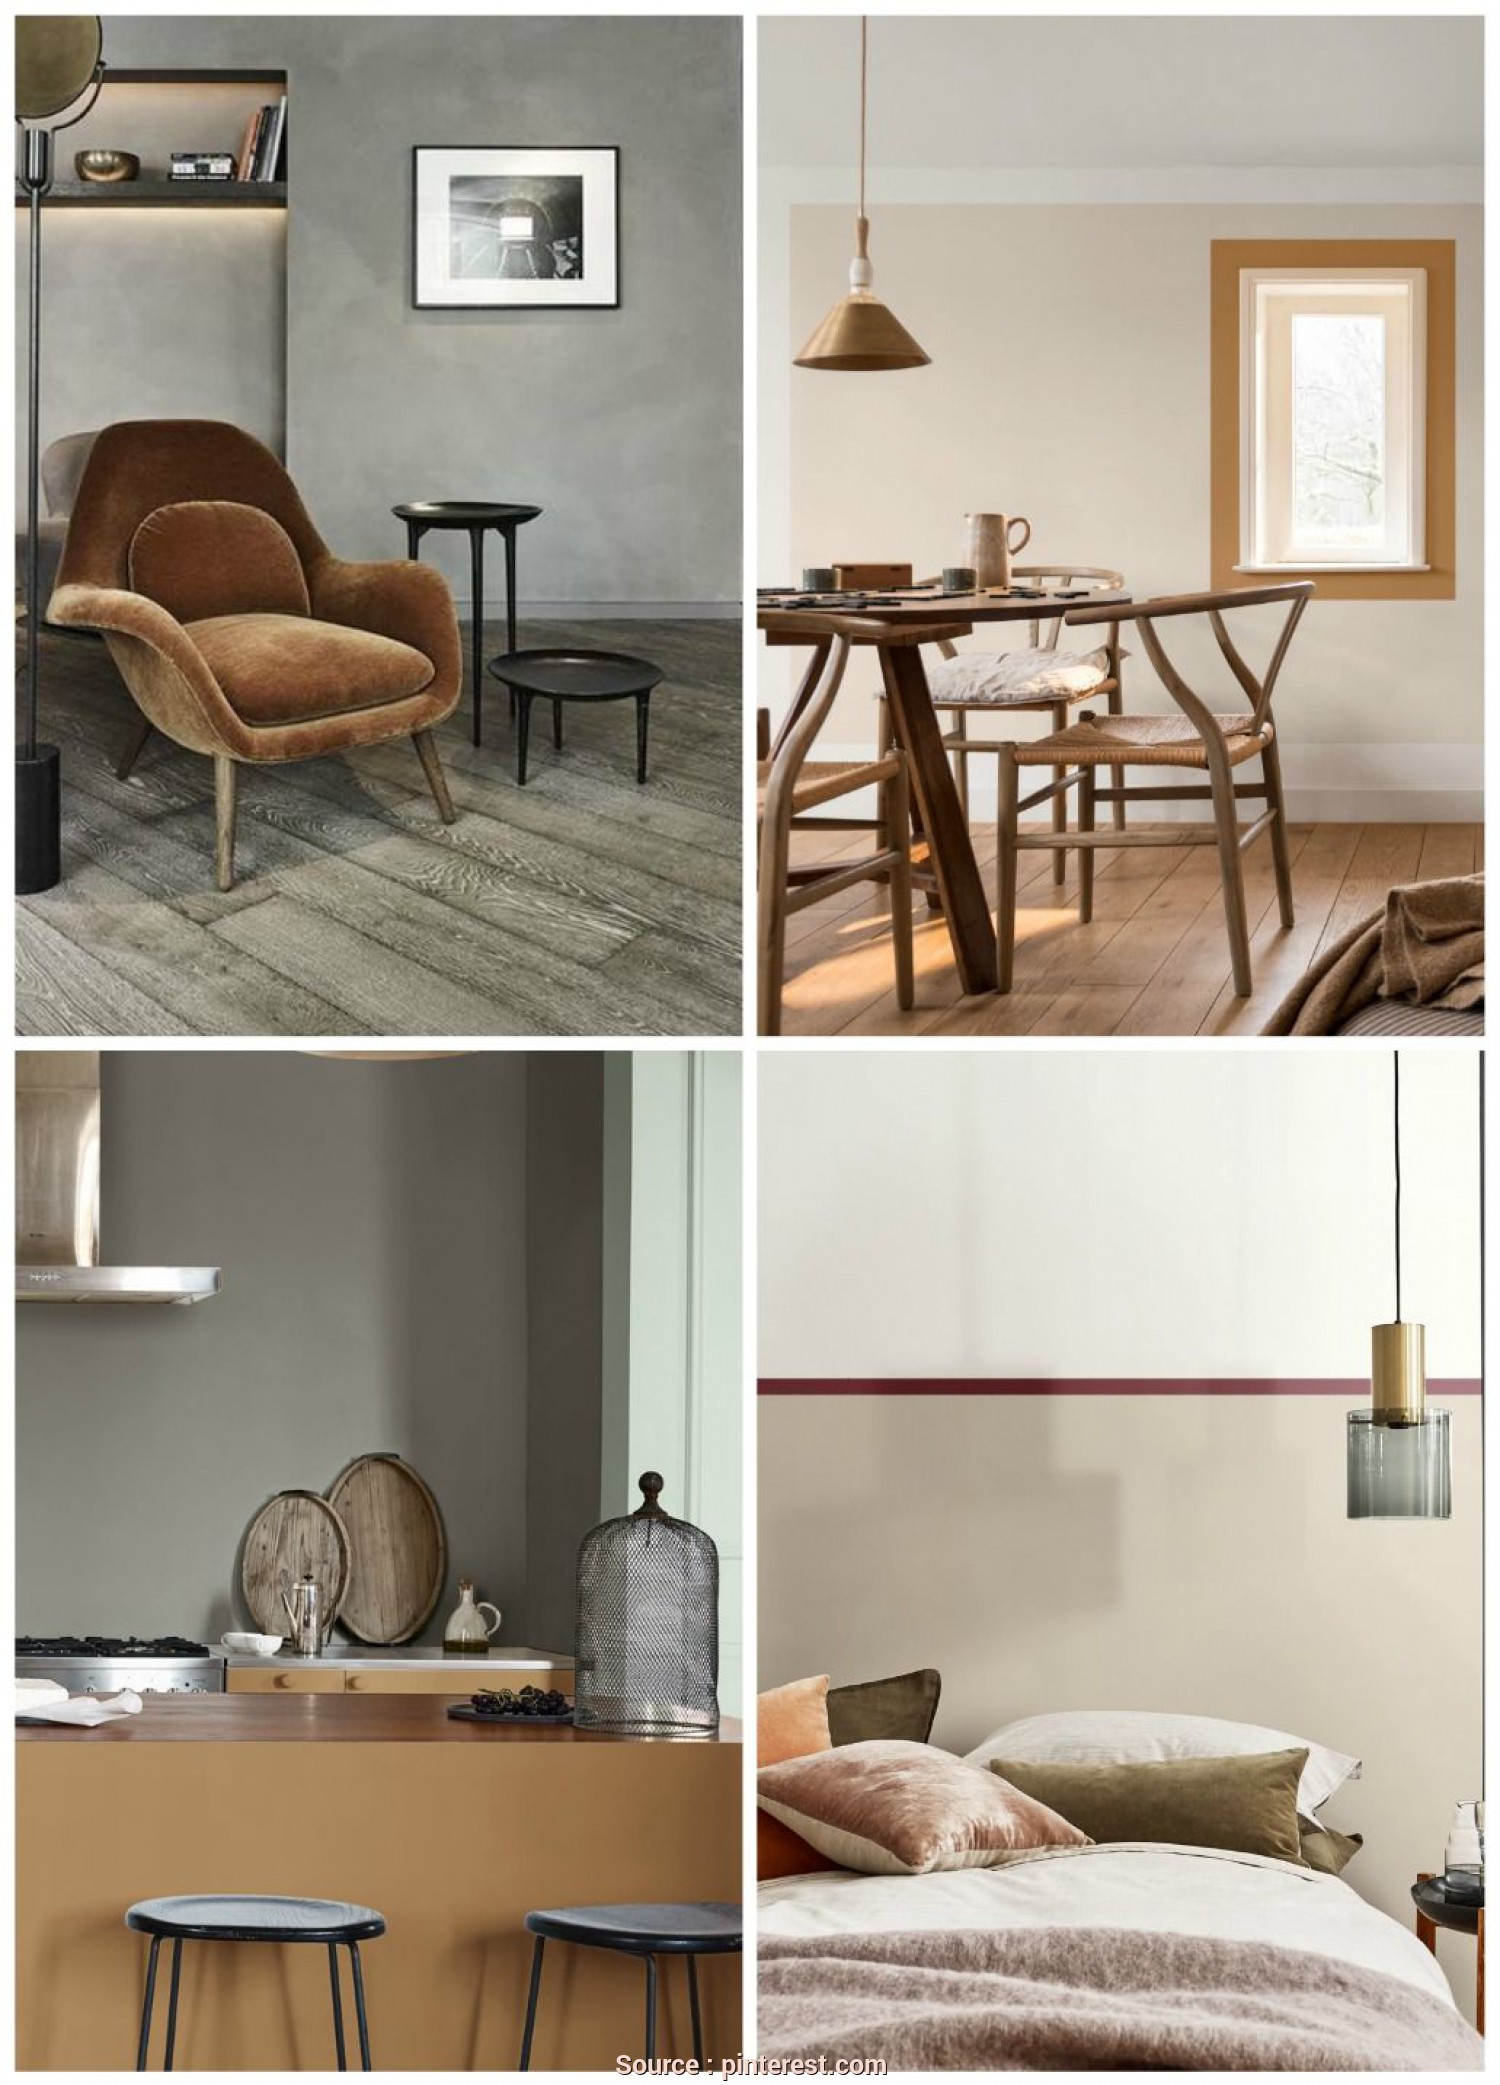 La Tazzina, Pinterest, Ideale Color Futures 2019: Spiced Honey, La Tazzina Blu, Home